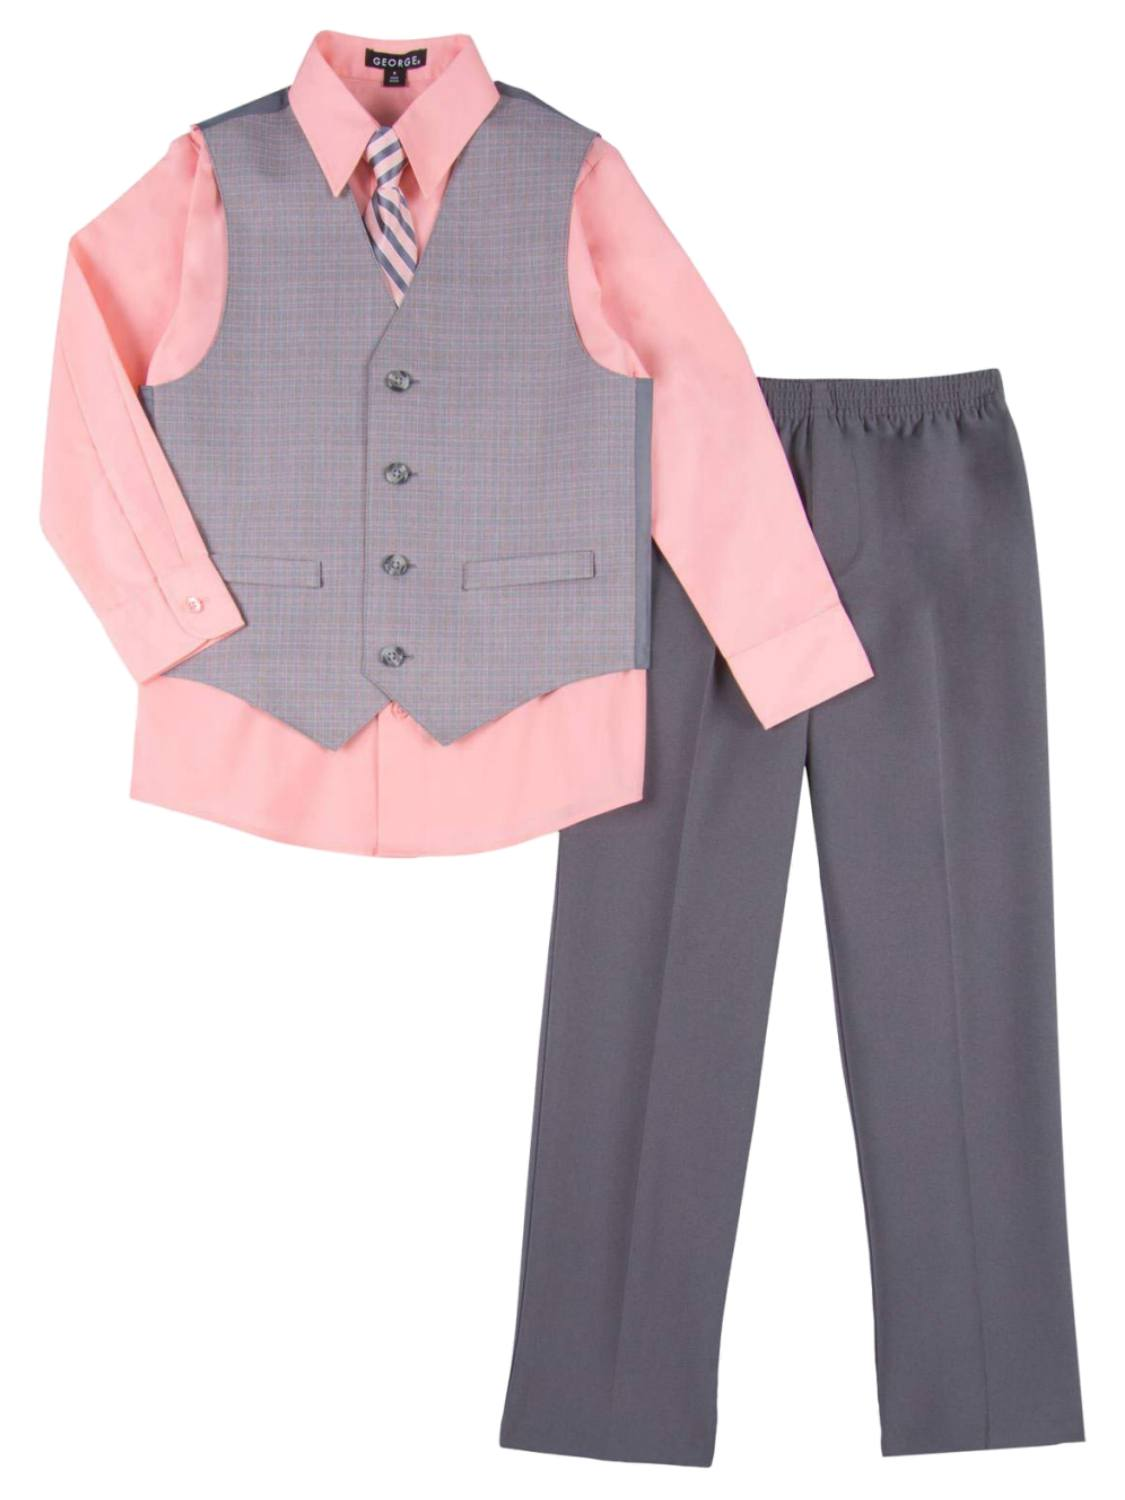 Boys 4 Piece Suit Peach & Gray Dress Up Outfit Holiday Shirt Tie Pants & Vest